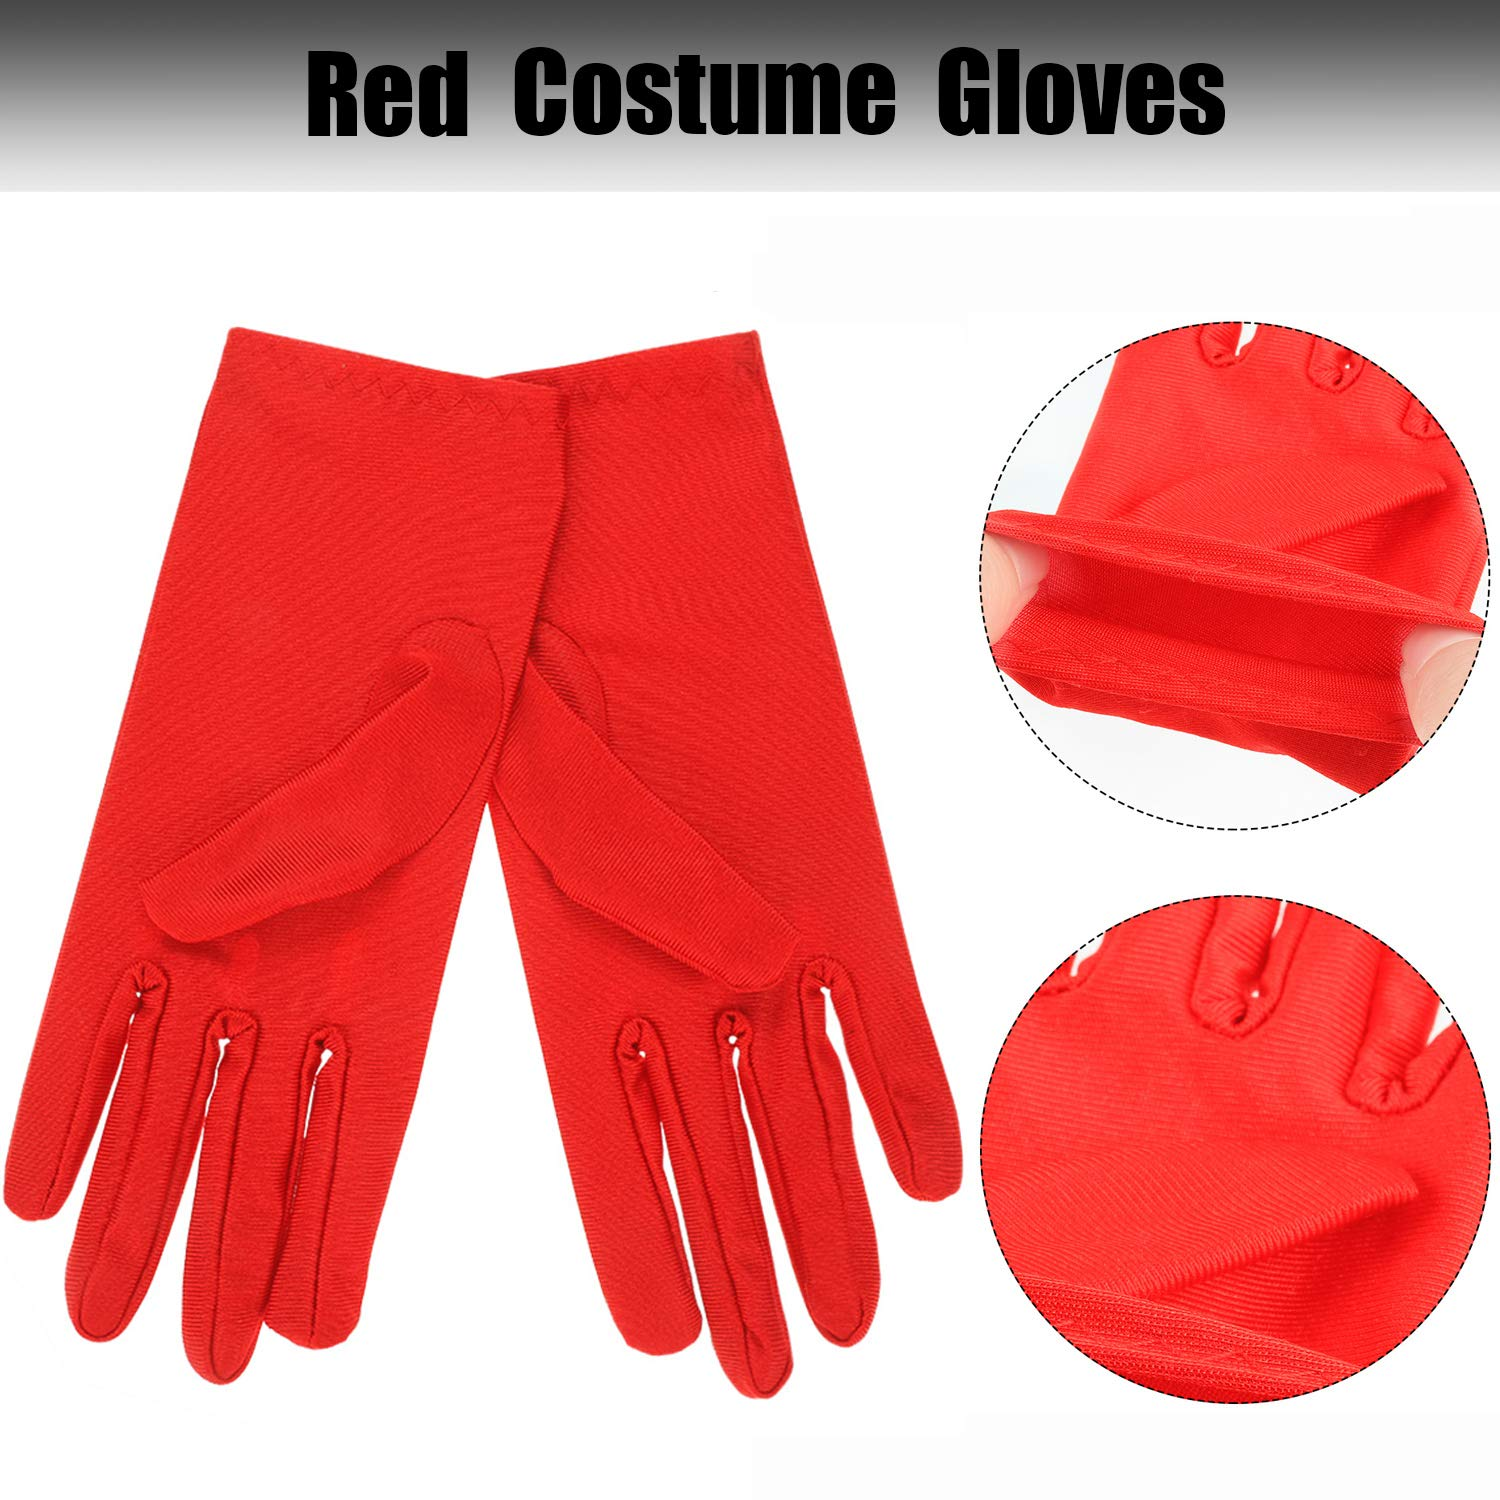 2 Pieces Felt Eye Masks with Elastic Rope and 2 Pairs Costume Gloves for Kids Halloween Cosplay Party